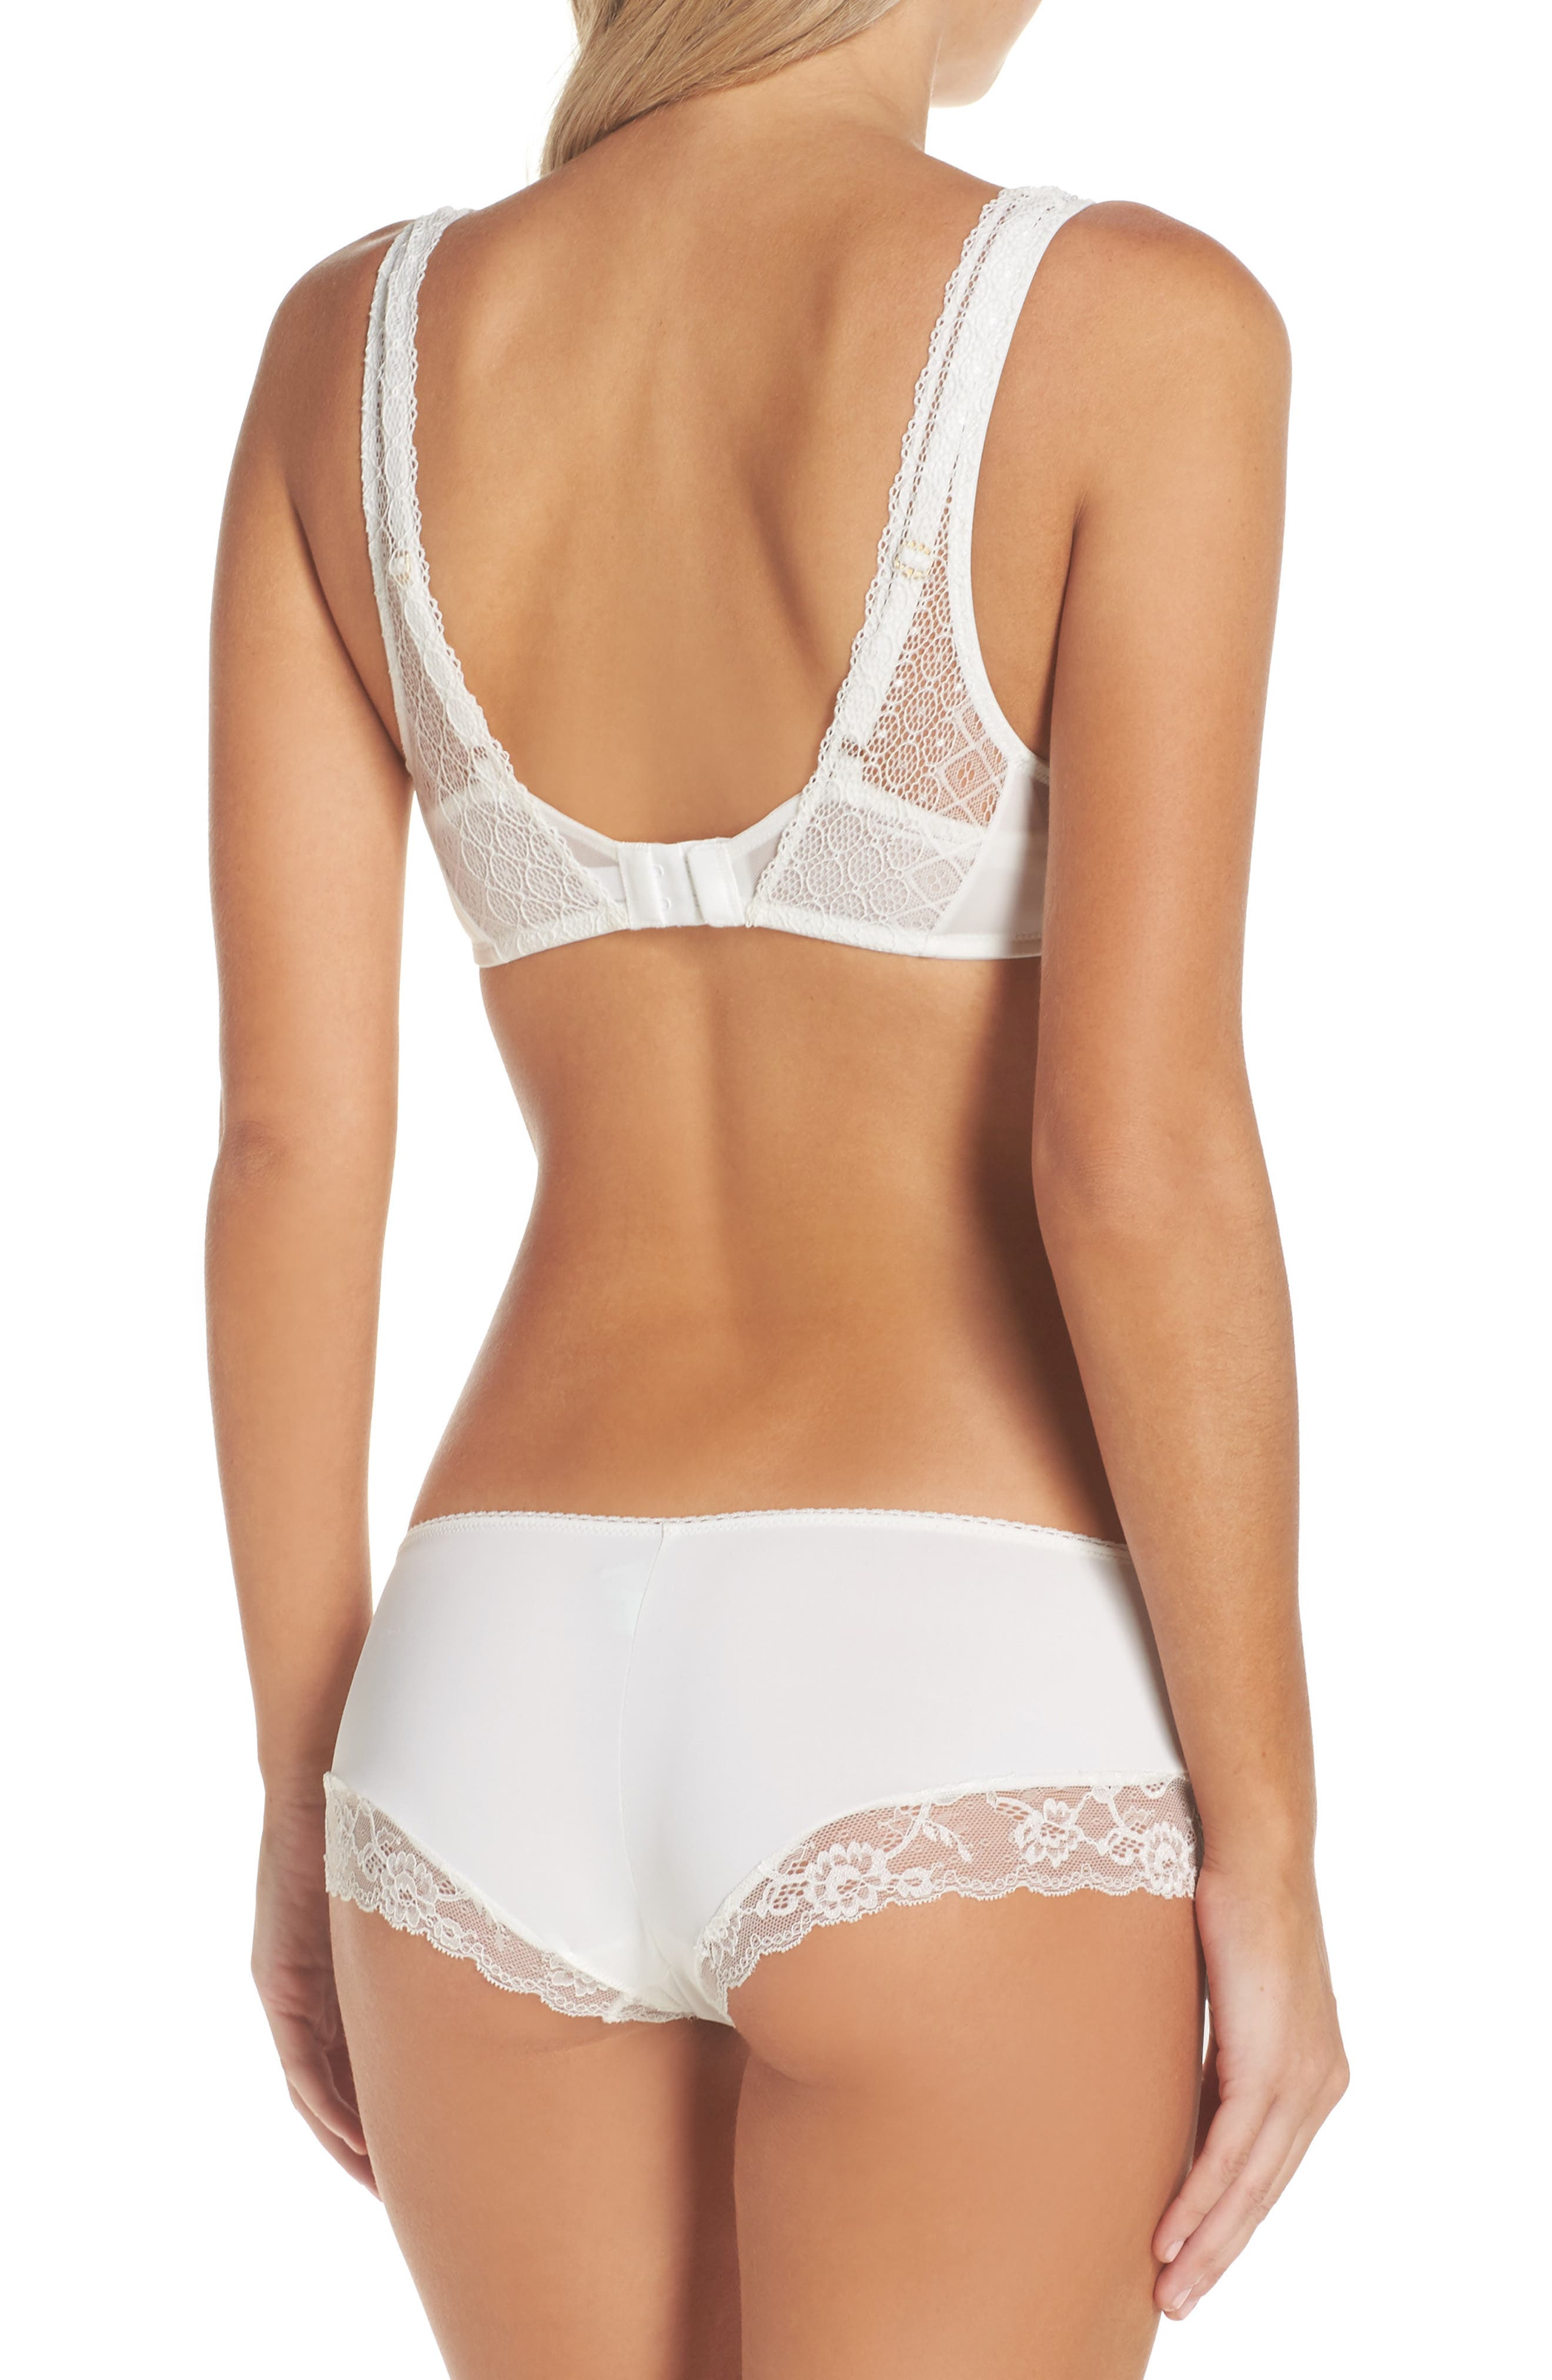 Honeydew Microfiber & Lace Hipster Panties,                             Alternate thumbnail 6, color,                             Ivory